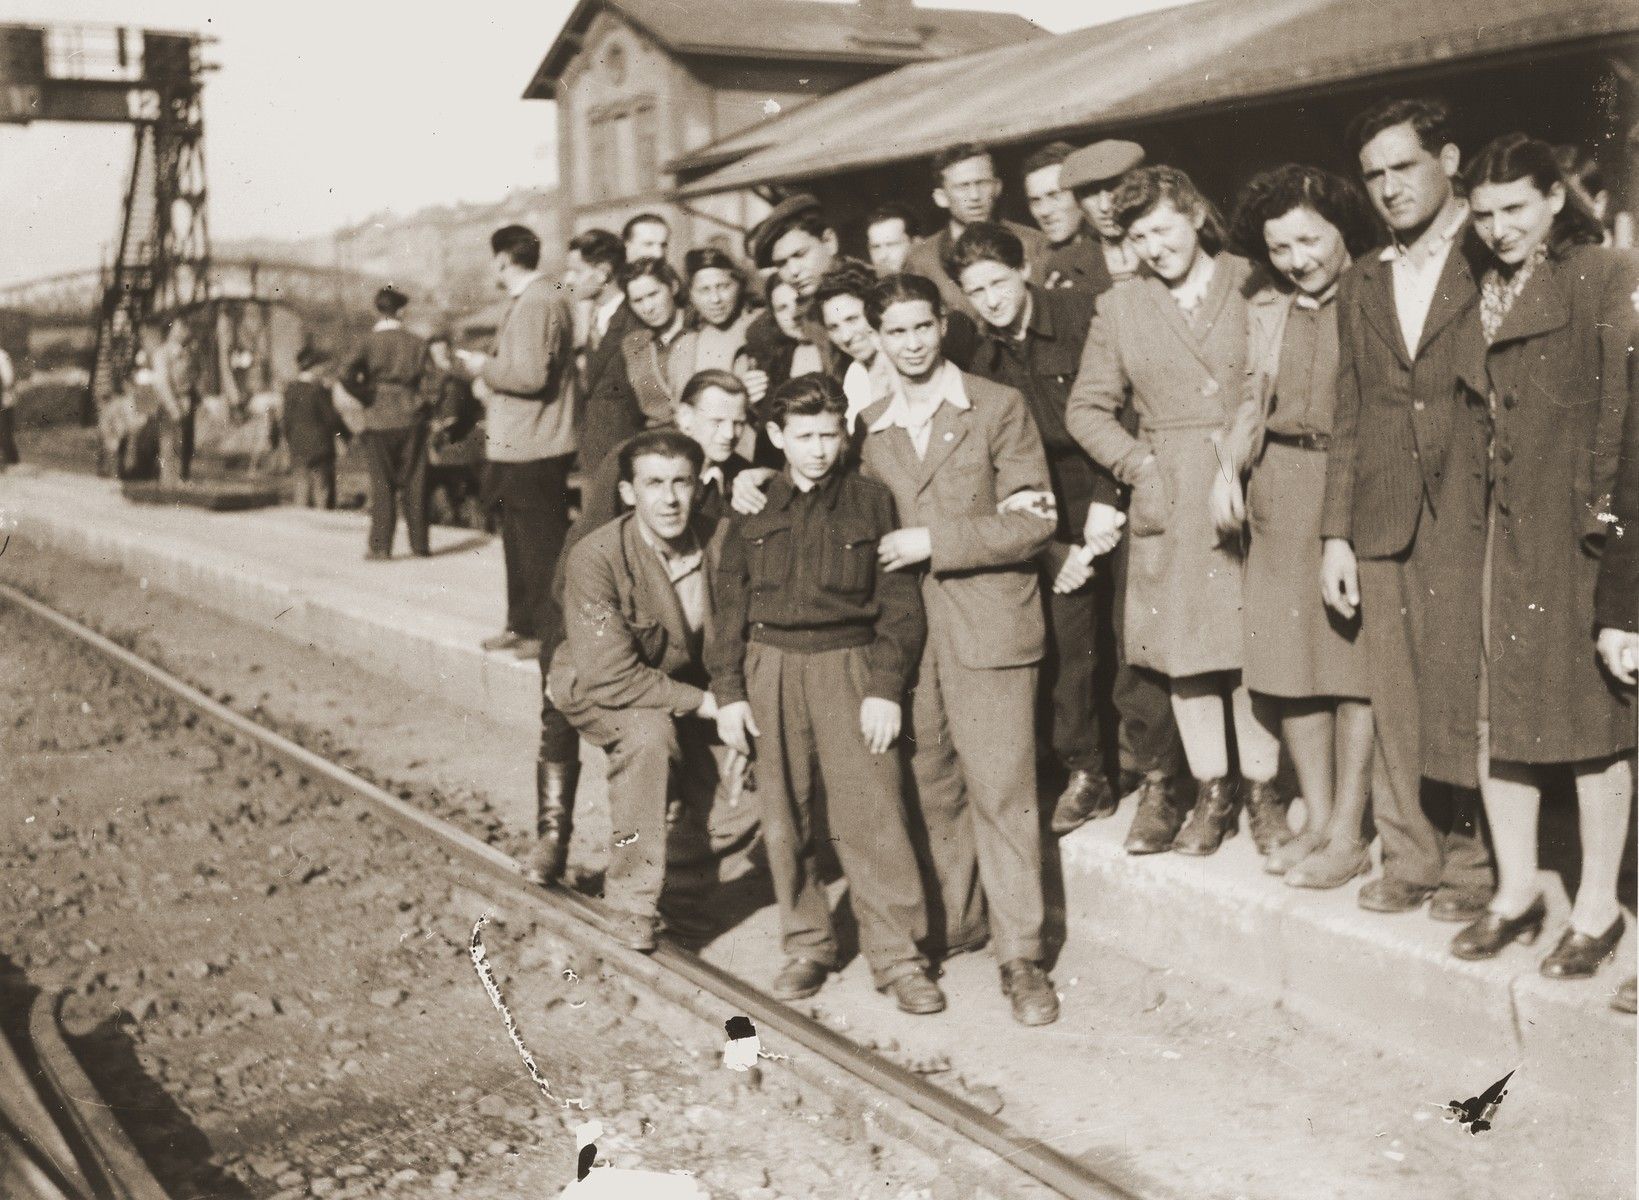 A group of Jewish DPs waits at the Vienna railroad station for a train to take them on the next leg of their journey along the Bricha route to the American Zone of Germany.  In the center is Juzik Weiss.